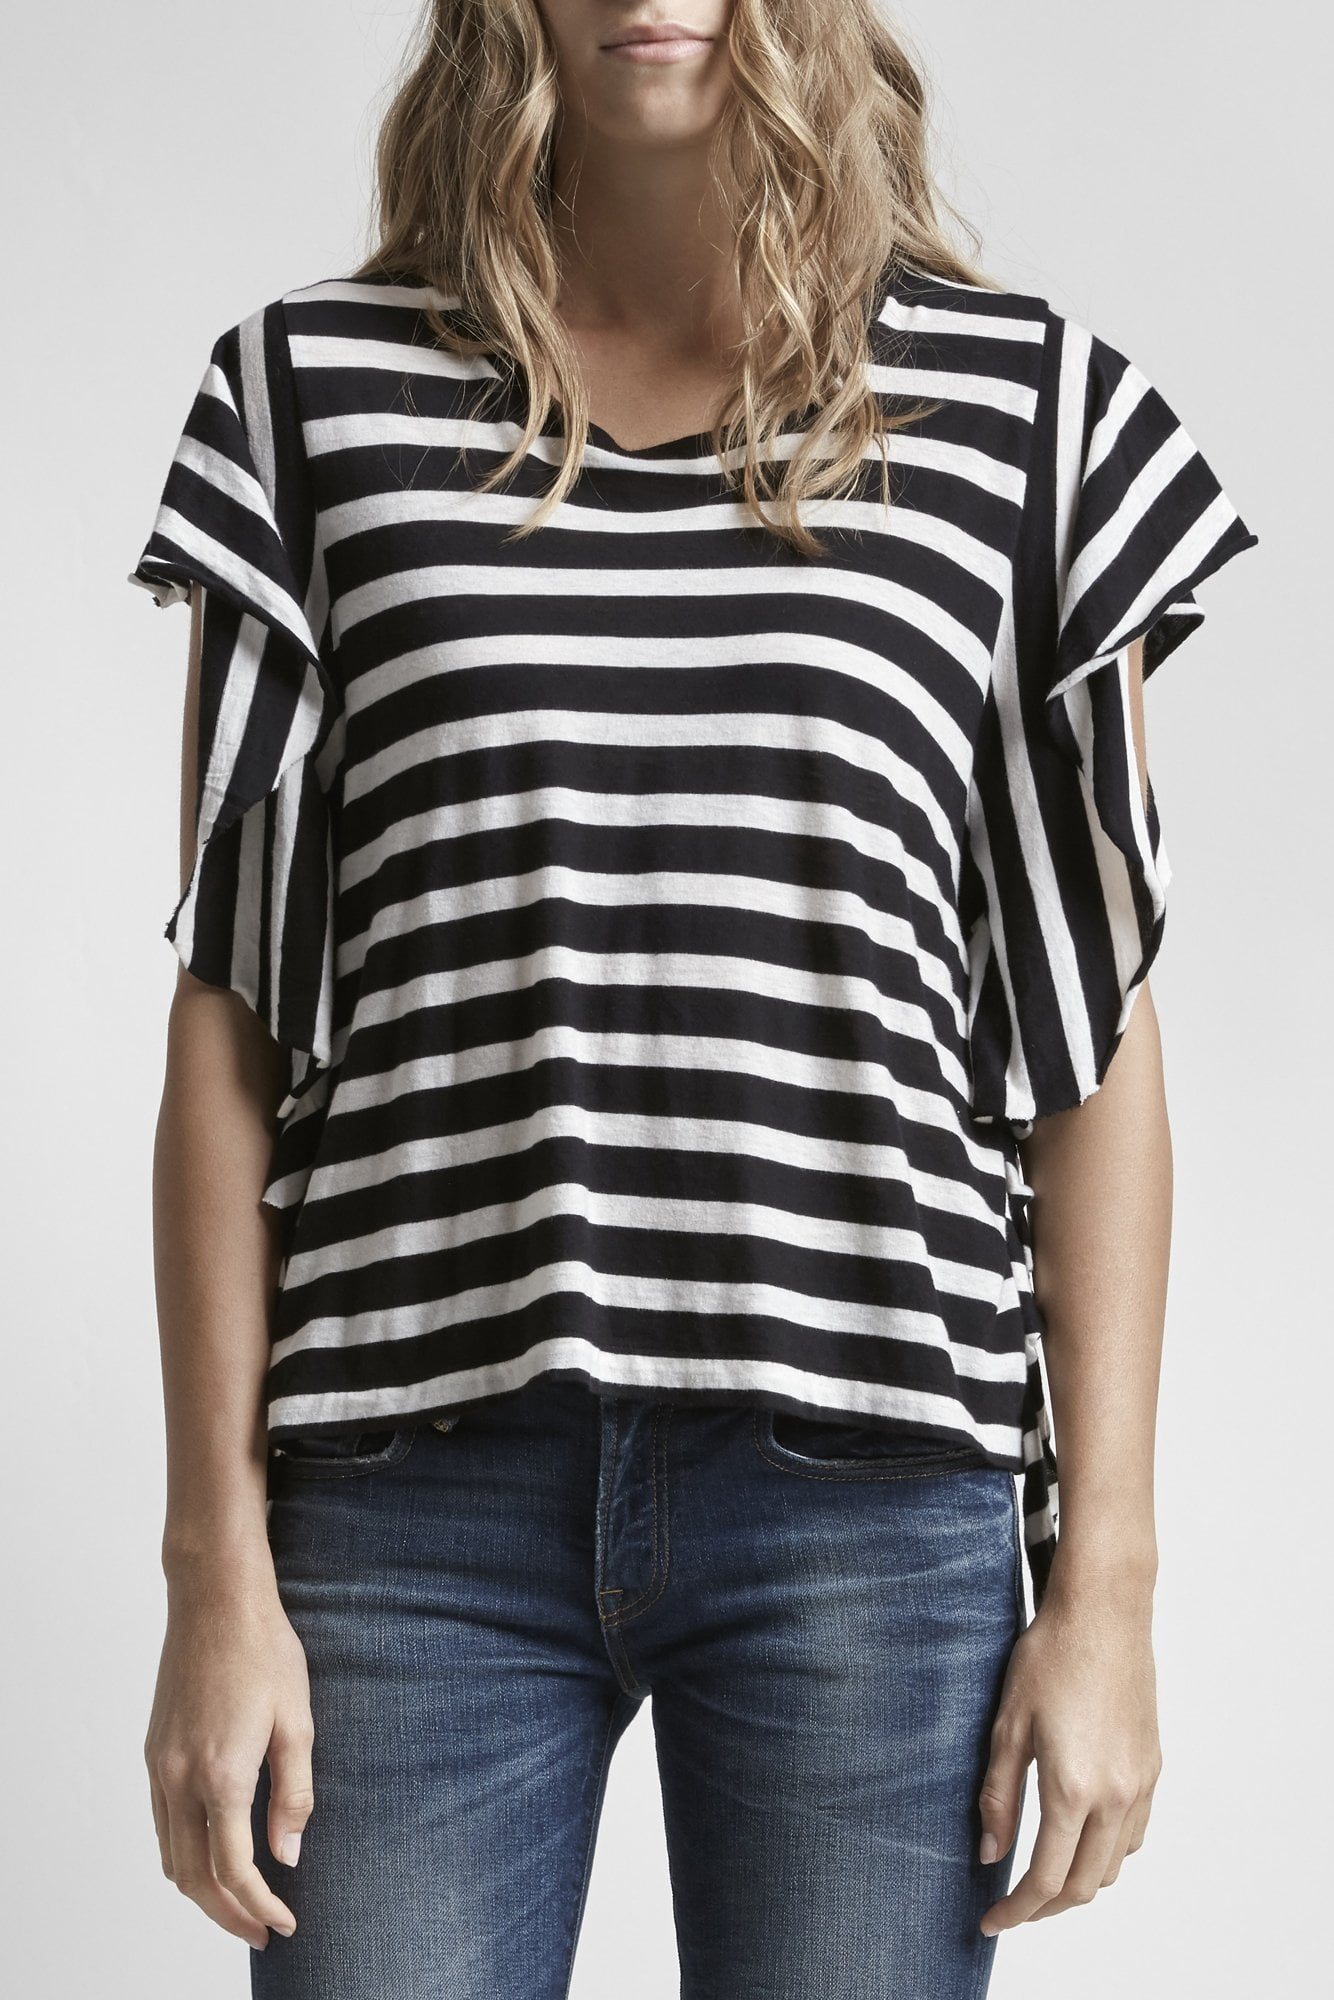 Striped Flutter T-Black w/ White